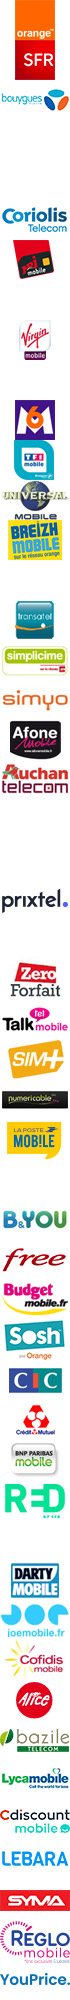 forfait Joe Mobile Personnalisable - 250 Mo illimit� Sans engagement